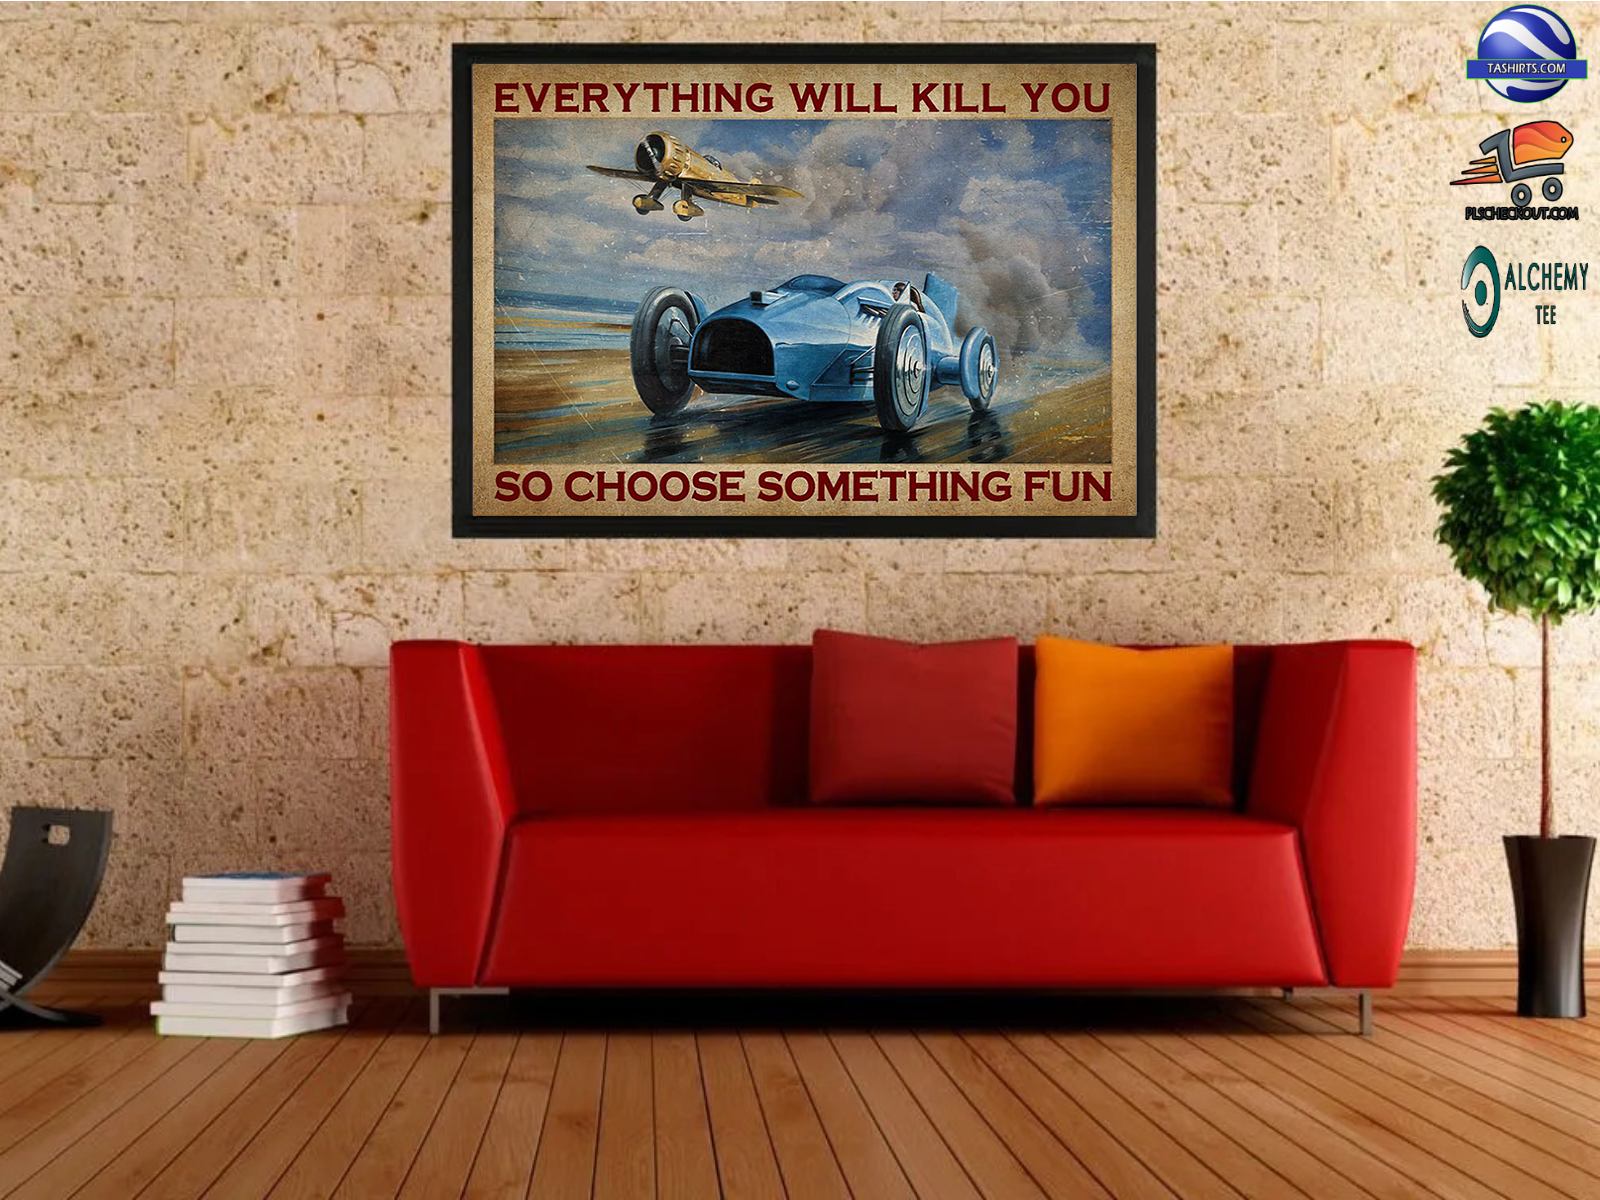 Aircraft and car everything will kill you so choose something fun poster